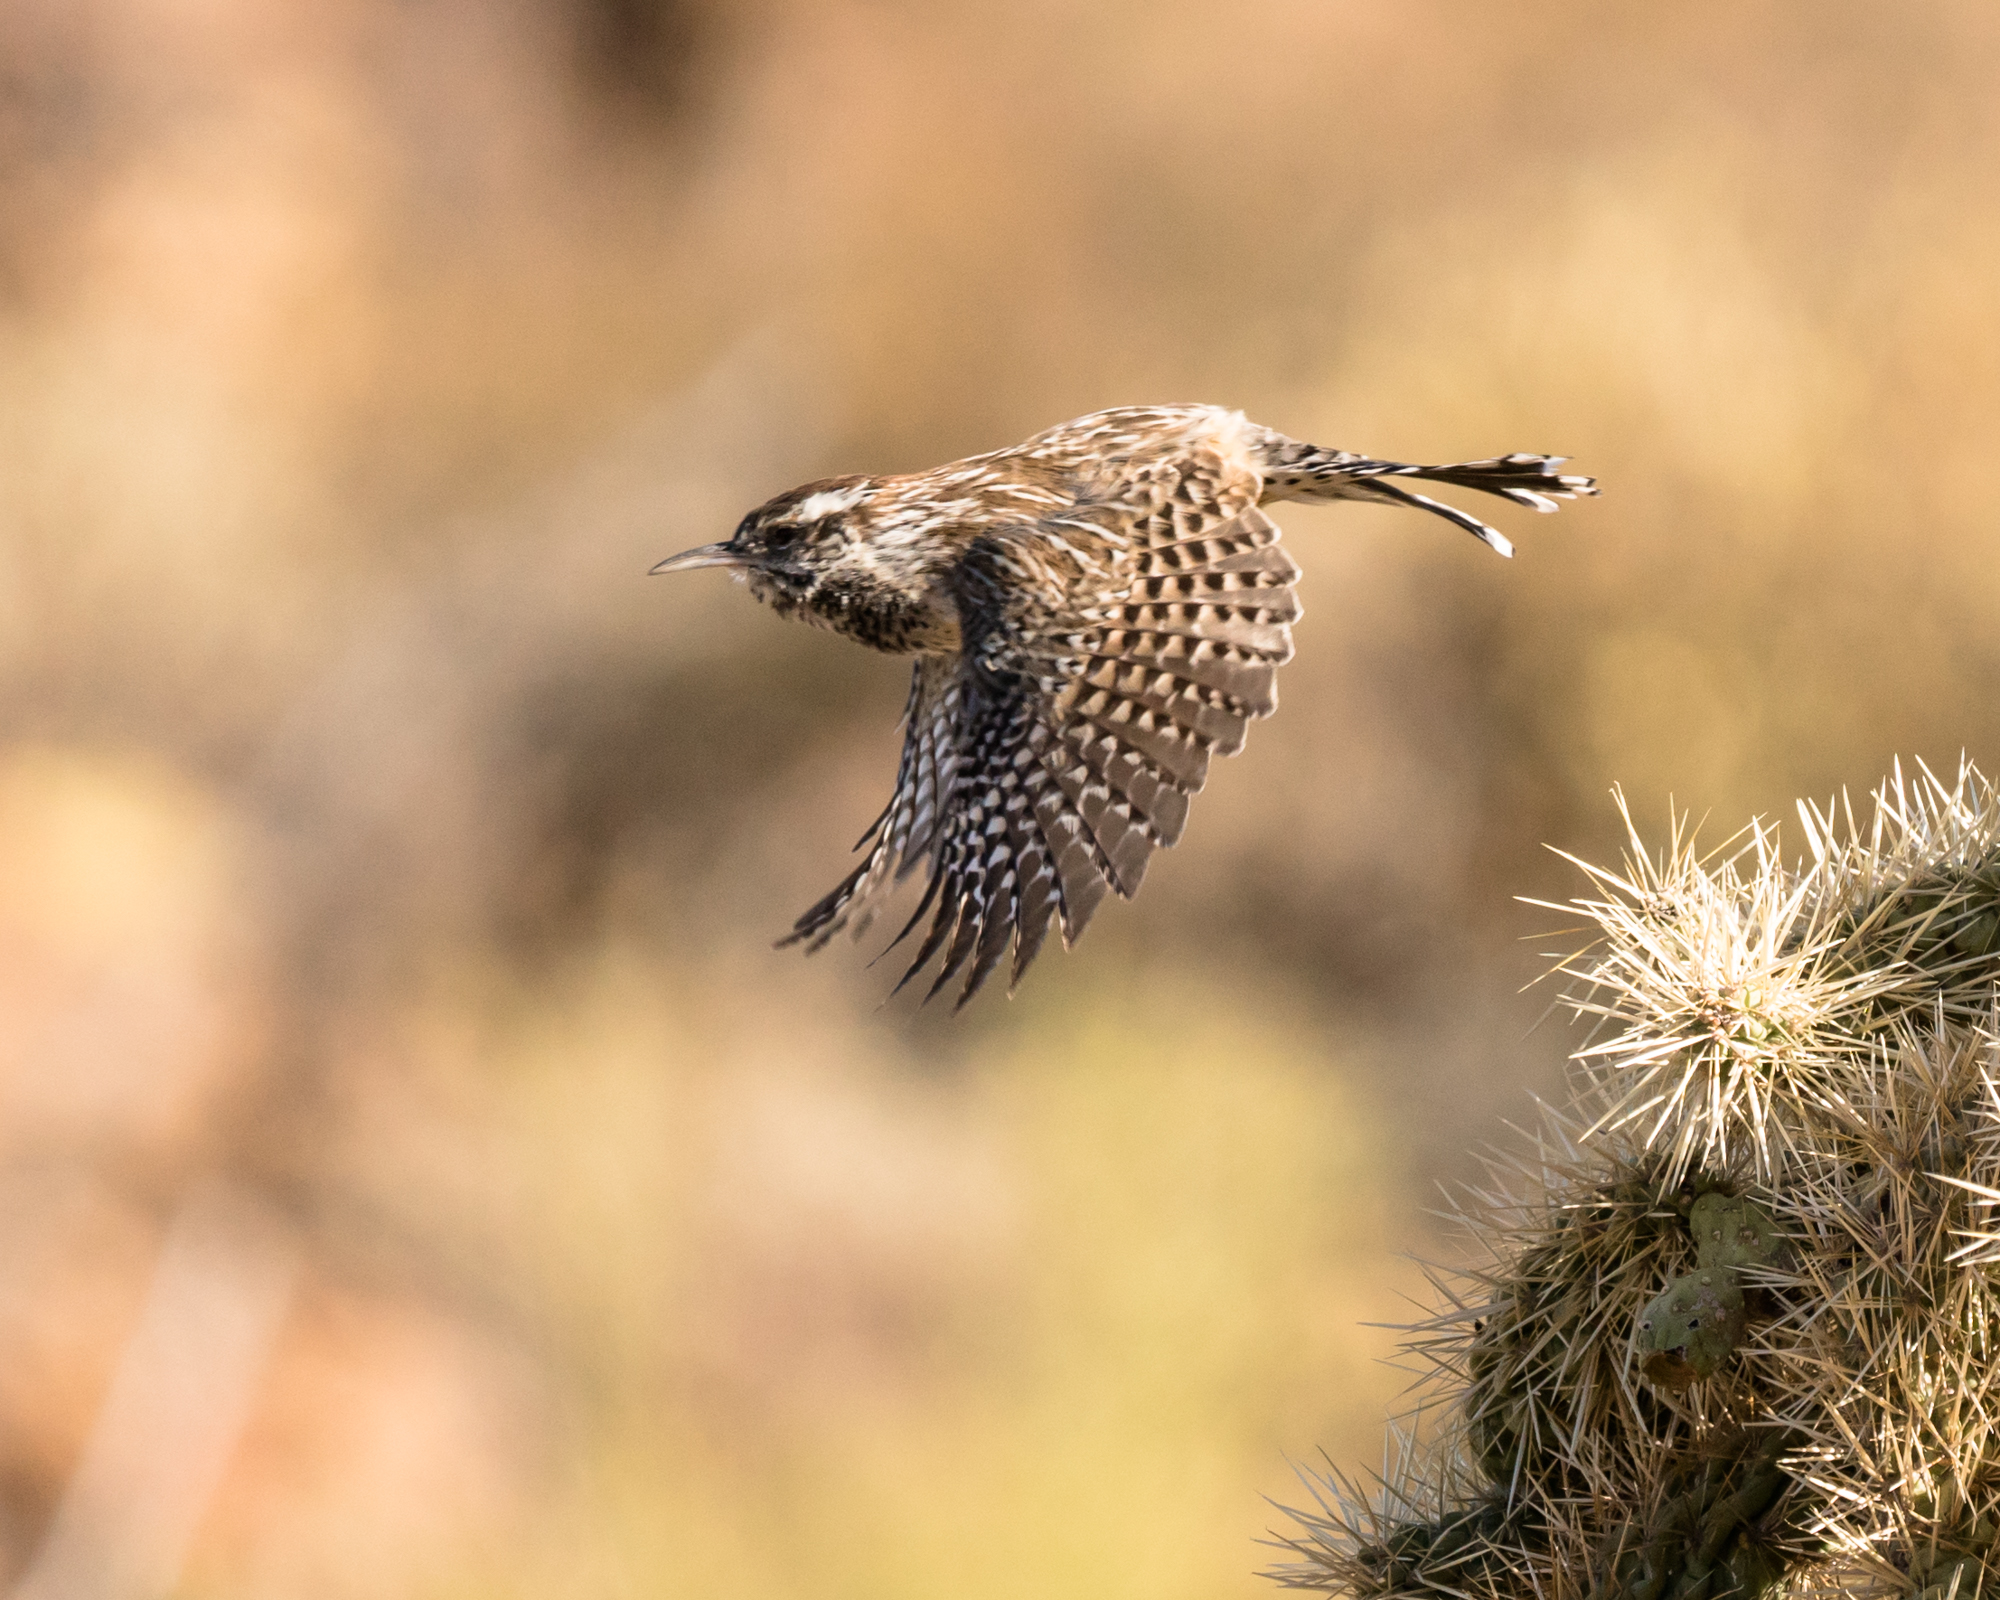 Cactus Wren taking off. Cropped image from Sony A7RII. FE 100-400mm F4.5-5.6 GM OSS. 400mm, f/6.3, 1/2500s, ISO 800.